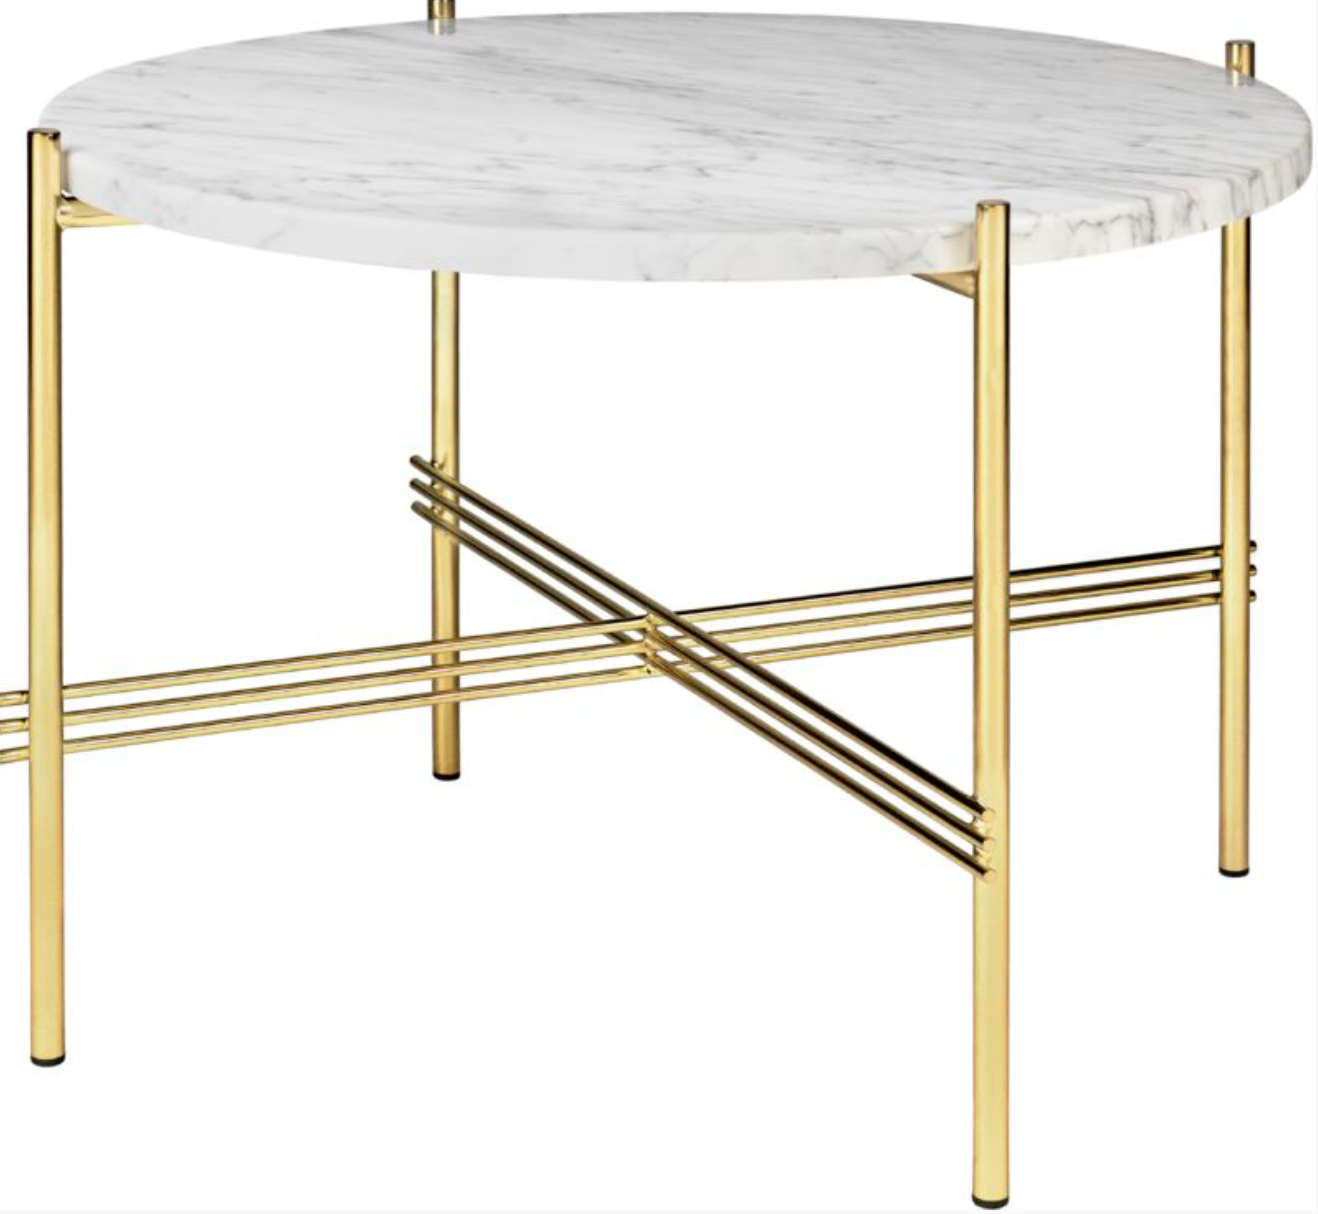 Ts Coffee Table Round 21 6 Dia Marble Top Coffee Table Marble Tables Design Round Coffee Table [ 1214 x 1318 Pixel ]